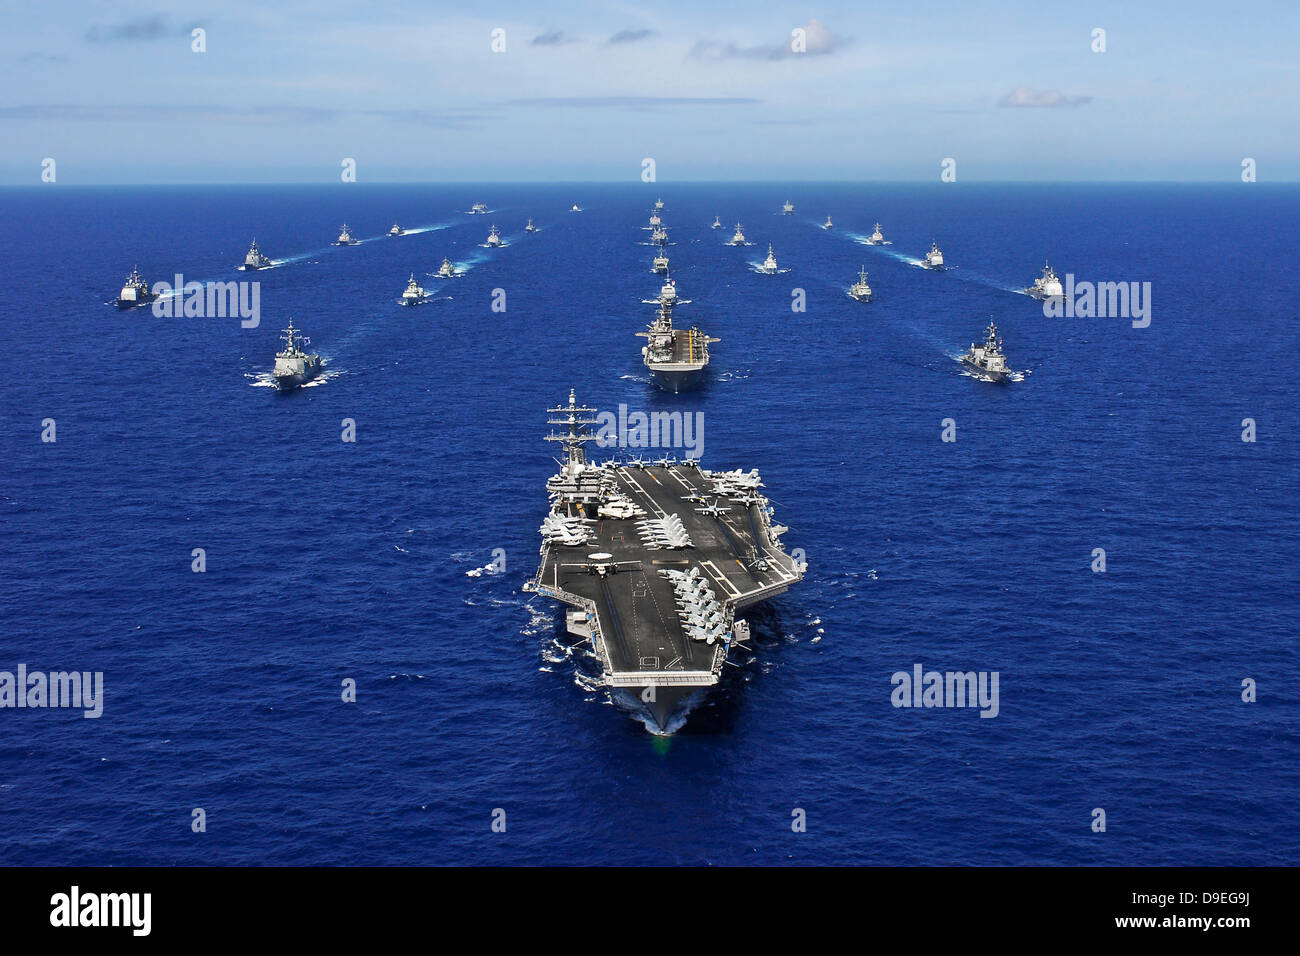 Aircraft carrier USS Ronald Reagan transits the Pacific Ocean with a fleet of ships. Stock Photo